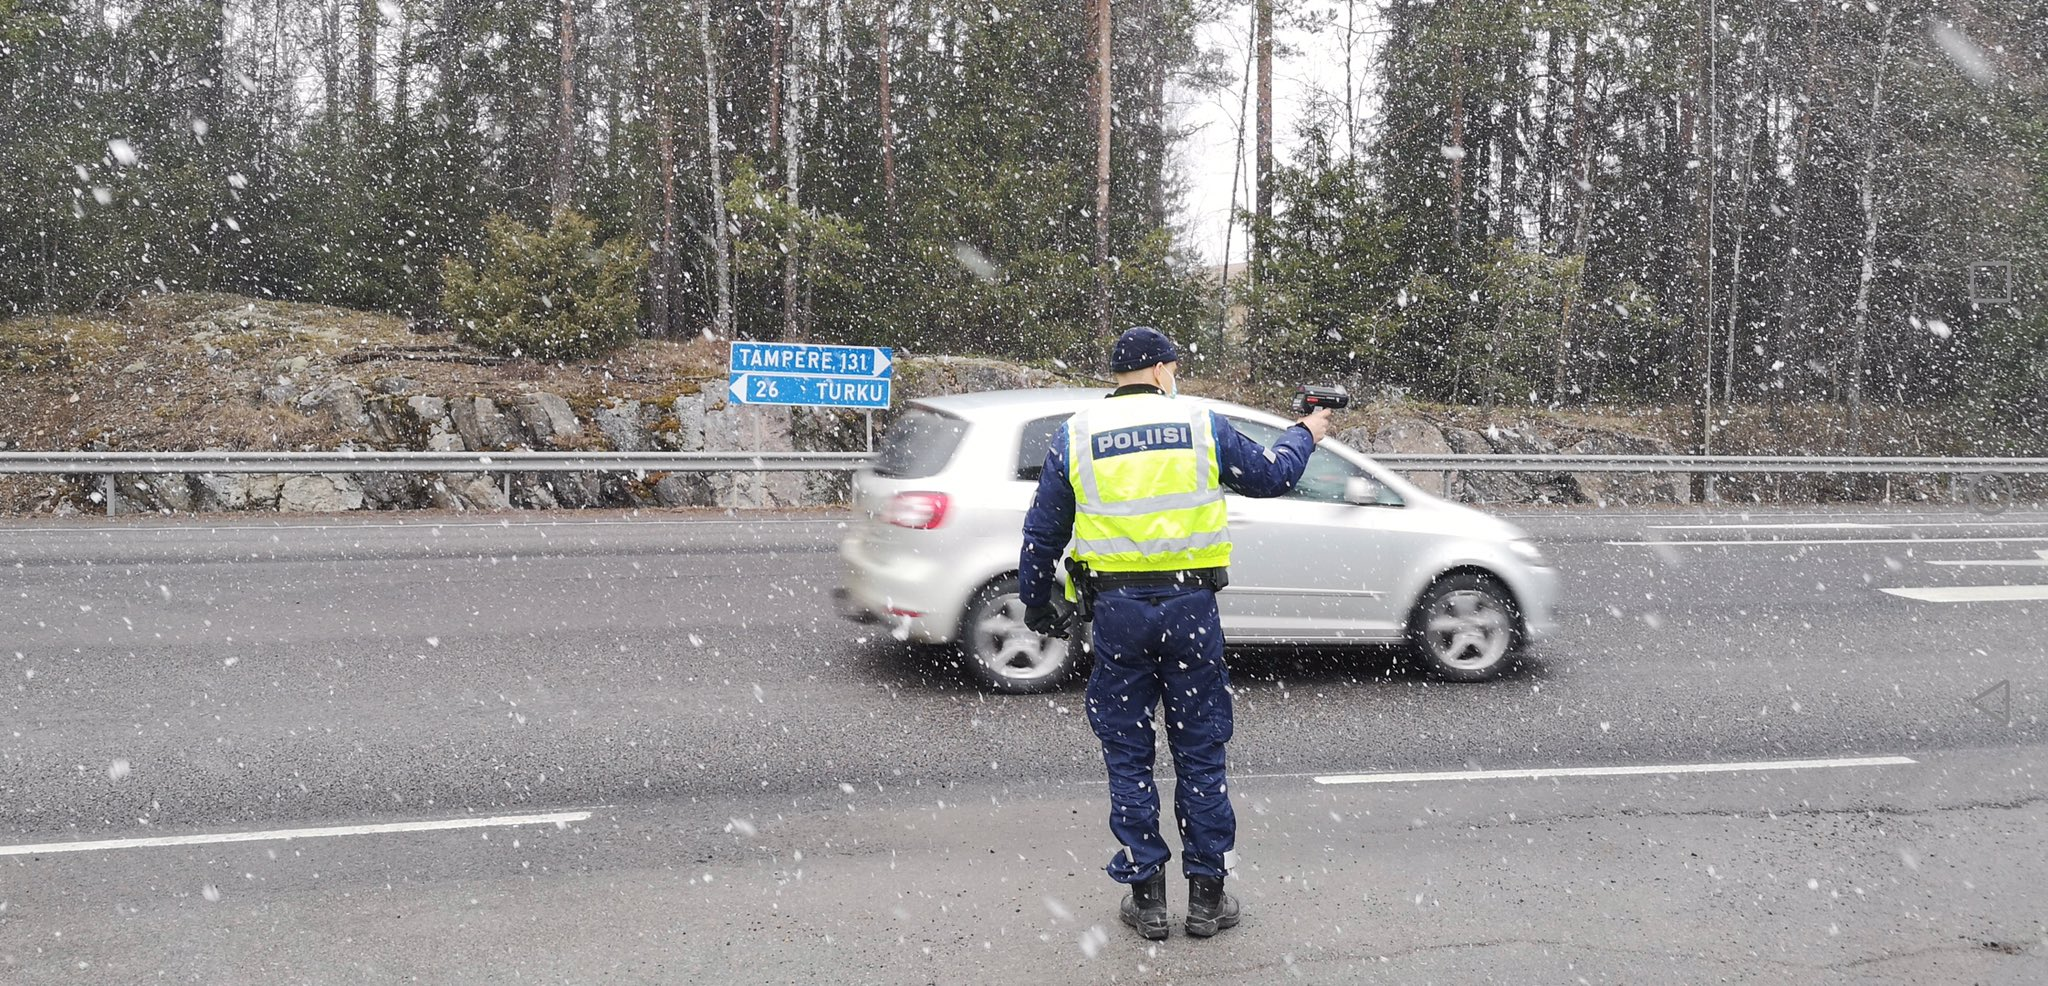 A police officer performing speed control duties on a Finnish highway. Photo: Twitter/@L_S_poliisi.